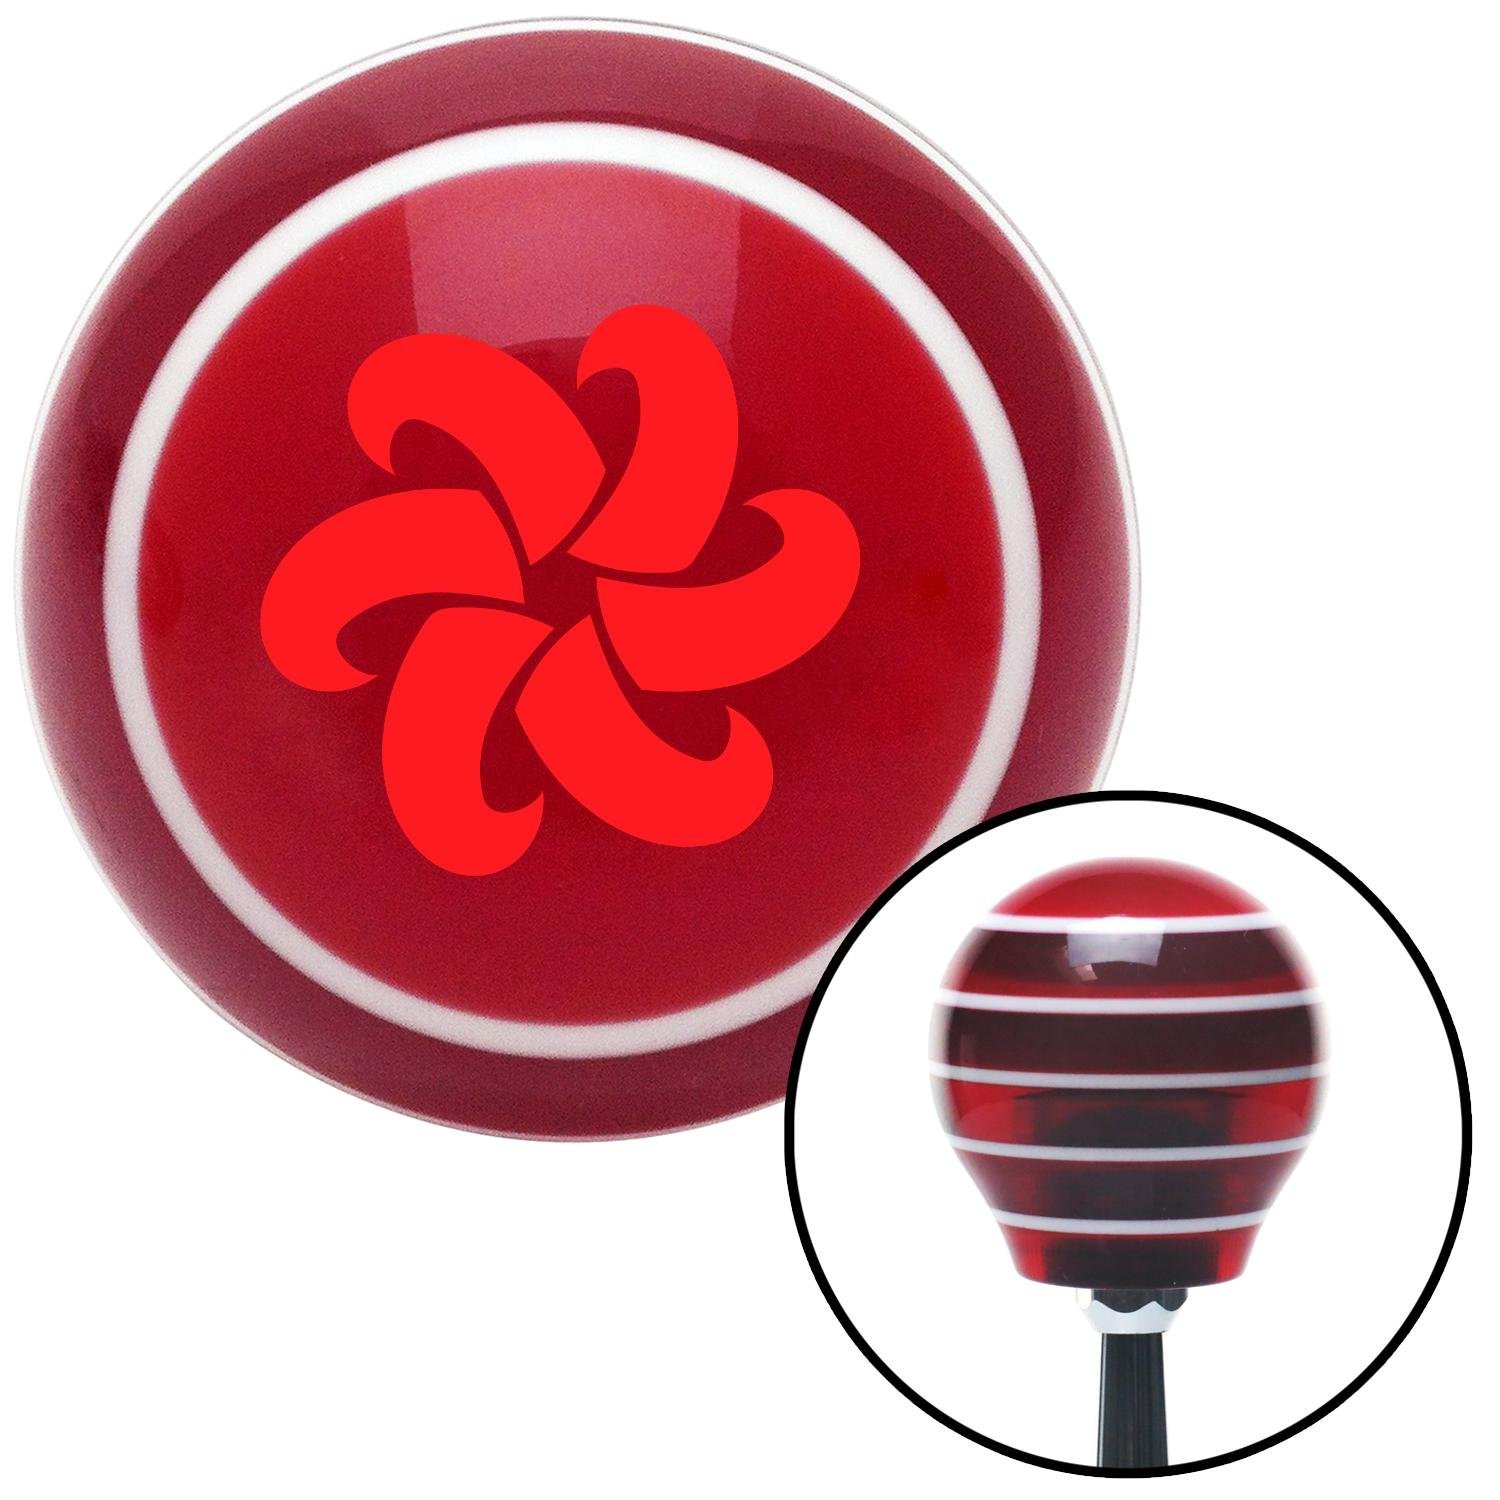 Red Fan Blades Spinning American Shifter 113111 Red Stripe Shift Knob with M16 x 1.5 Insert